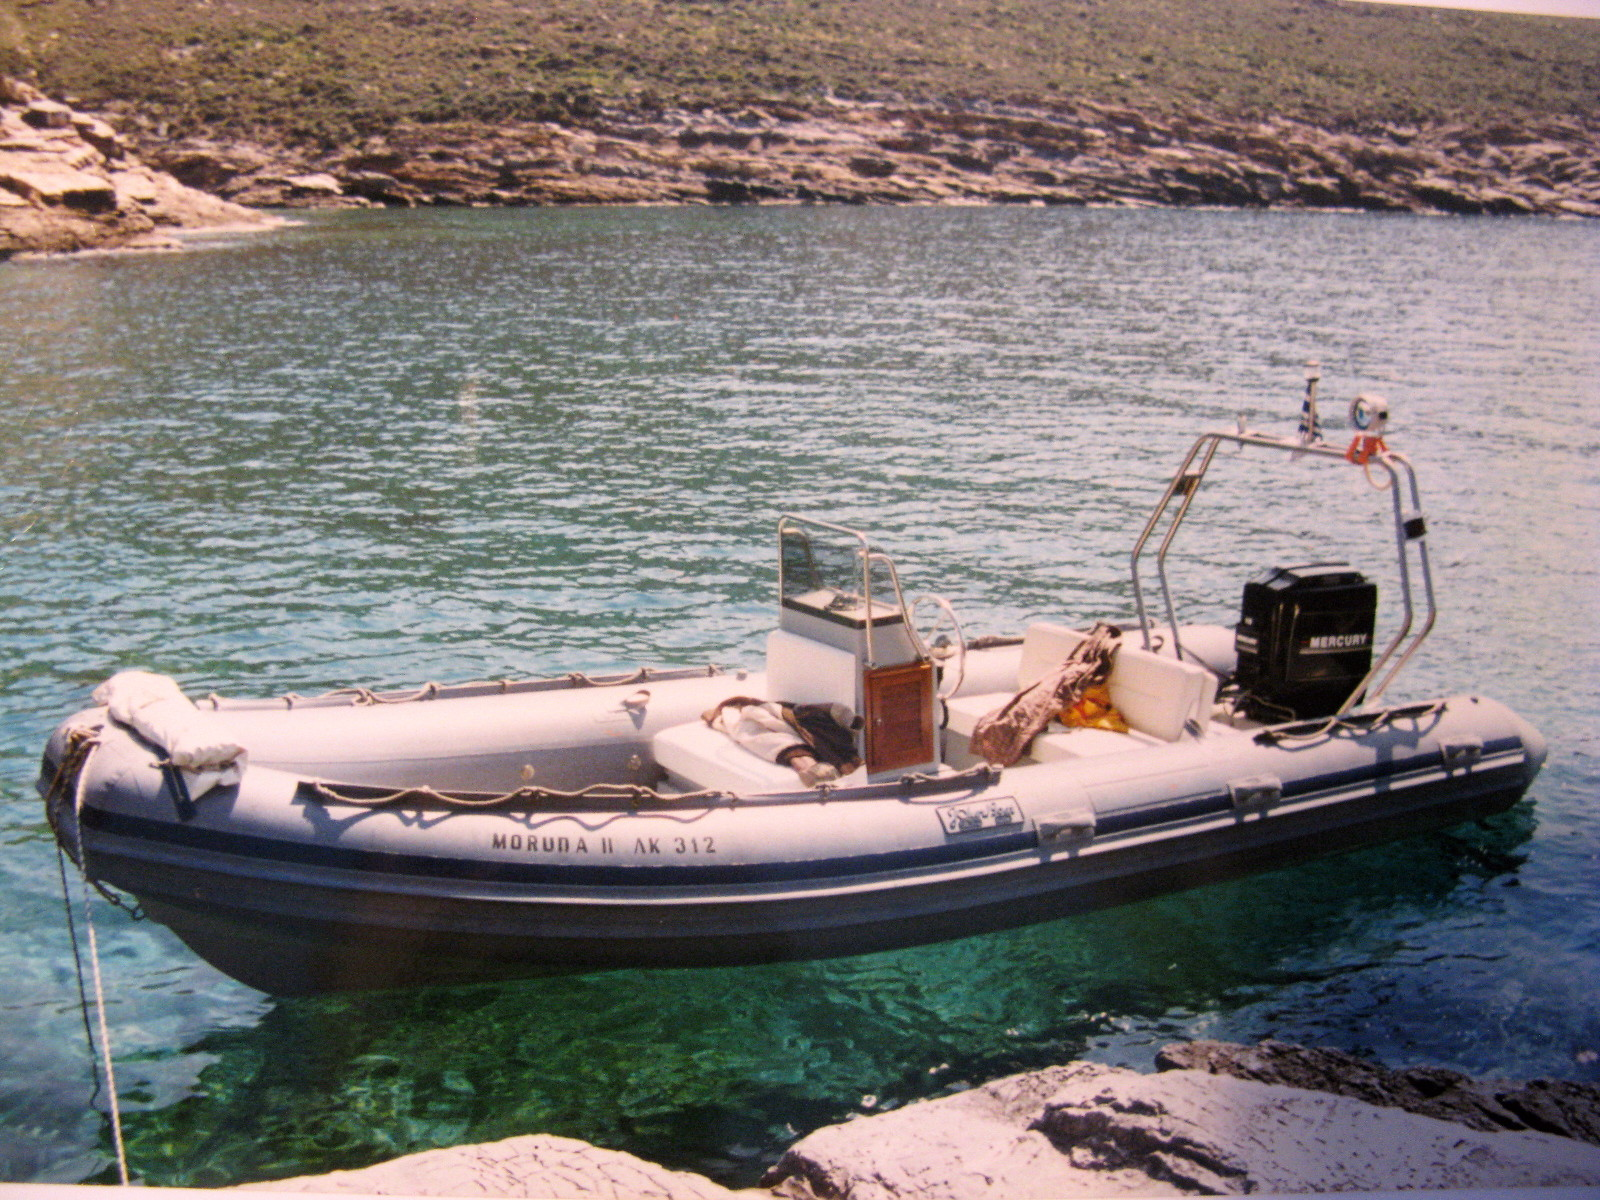 """""""MORUDA II"""" was a fun easy to handle RIB that offered to us many nice outings exploring the island of Kea were she was based."""